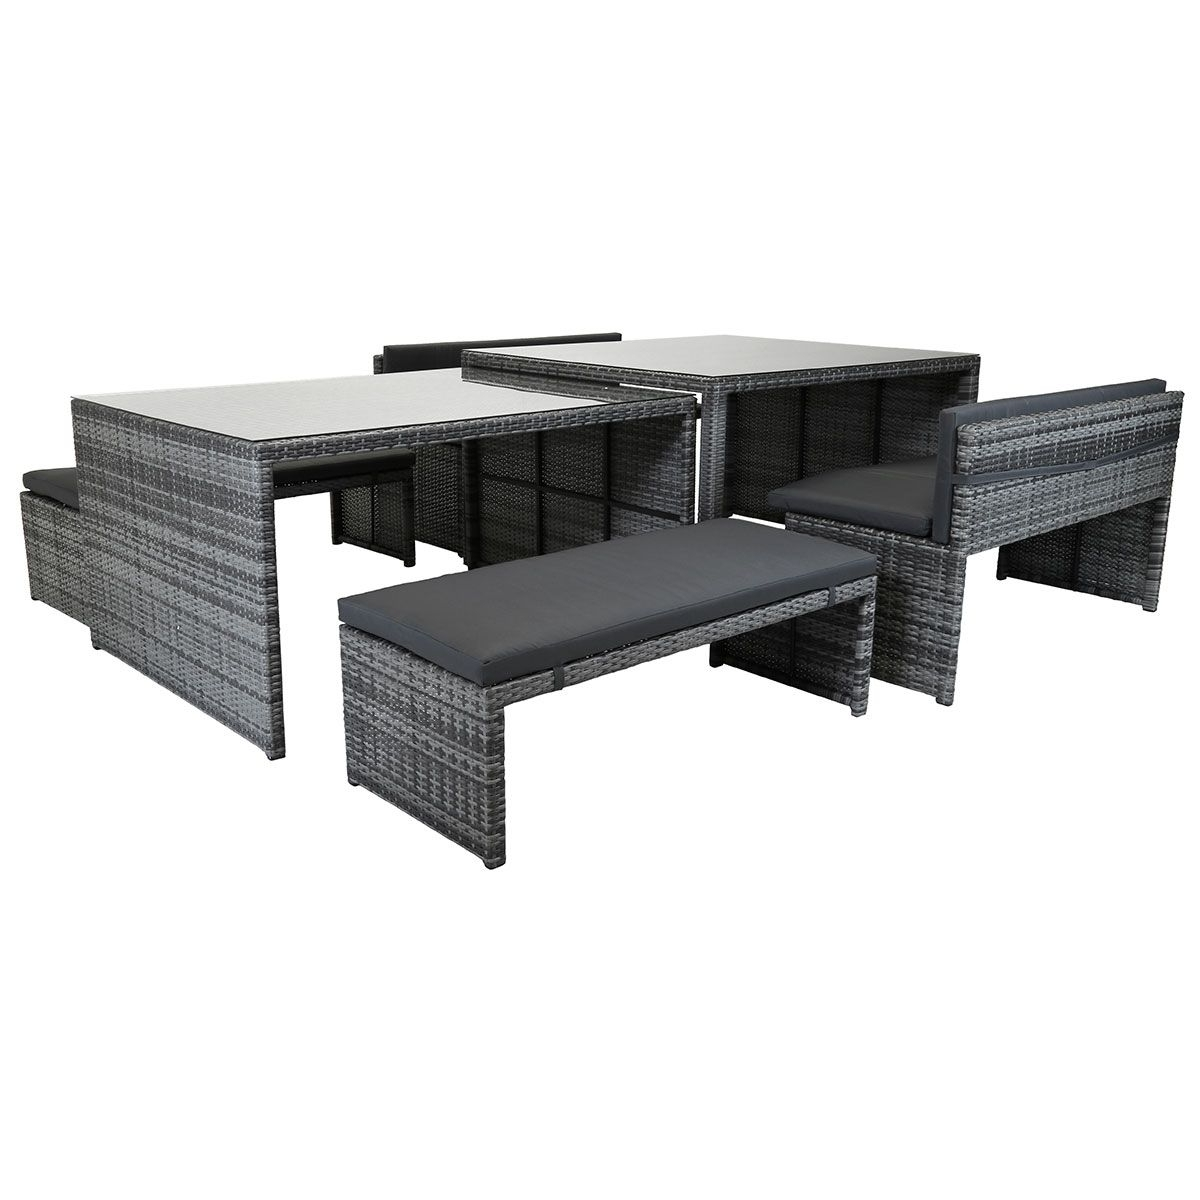 Widely Used Charles Bentley Rectangular Rattan Dining Set – Grey In Compact Dining Sets (View 20 of 25)